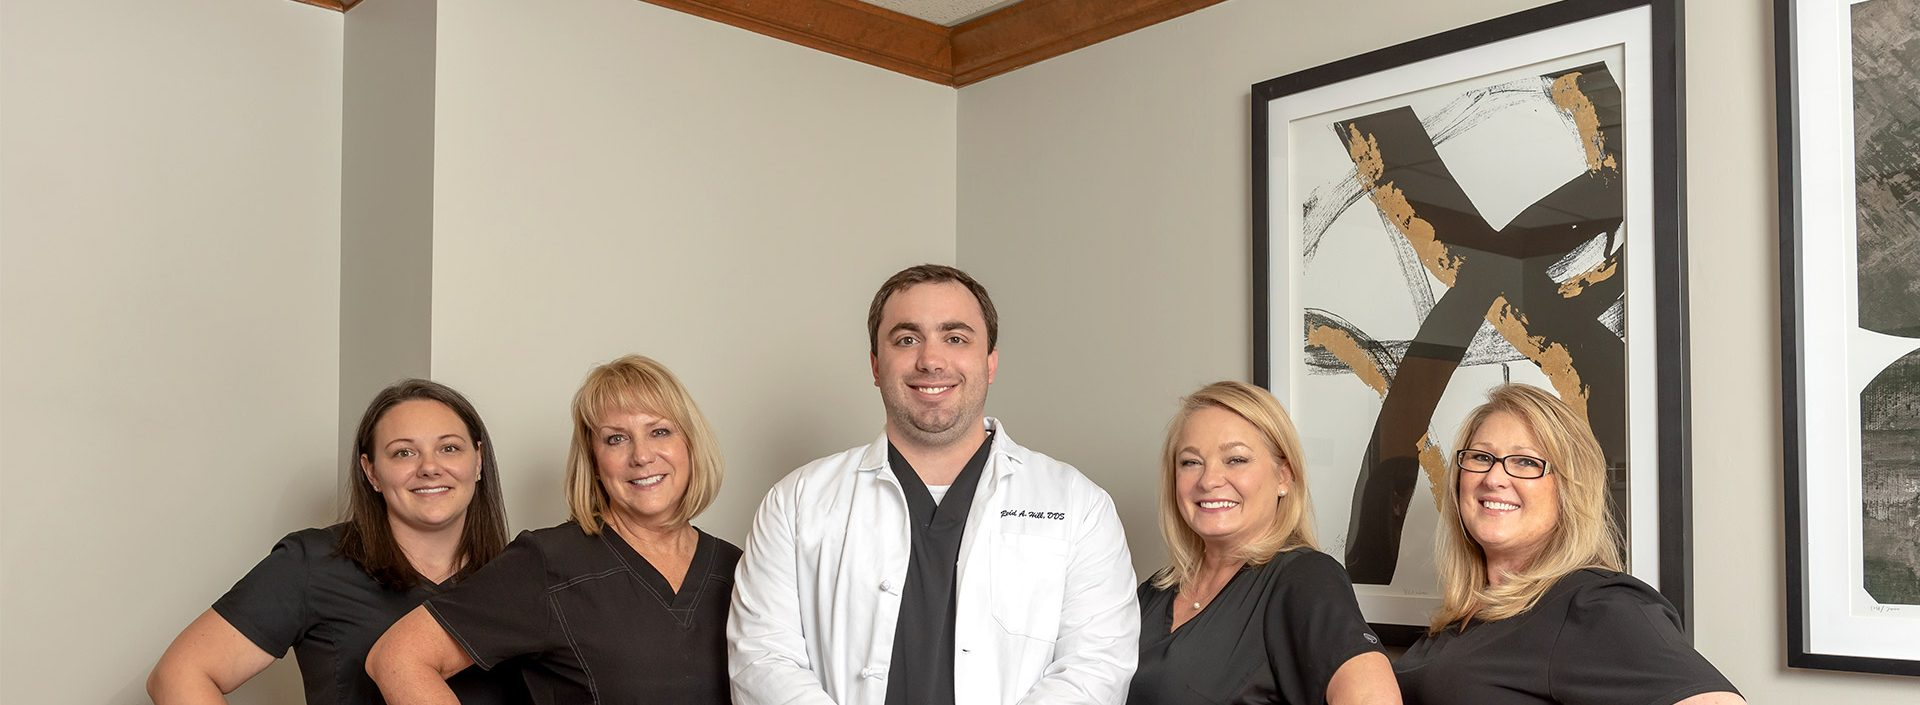 Hillsboro Village Dental Team